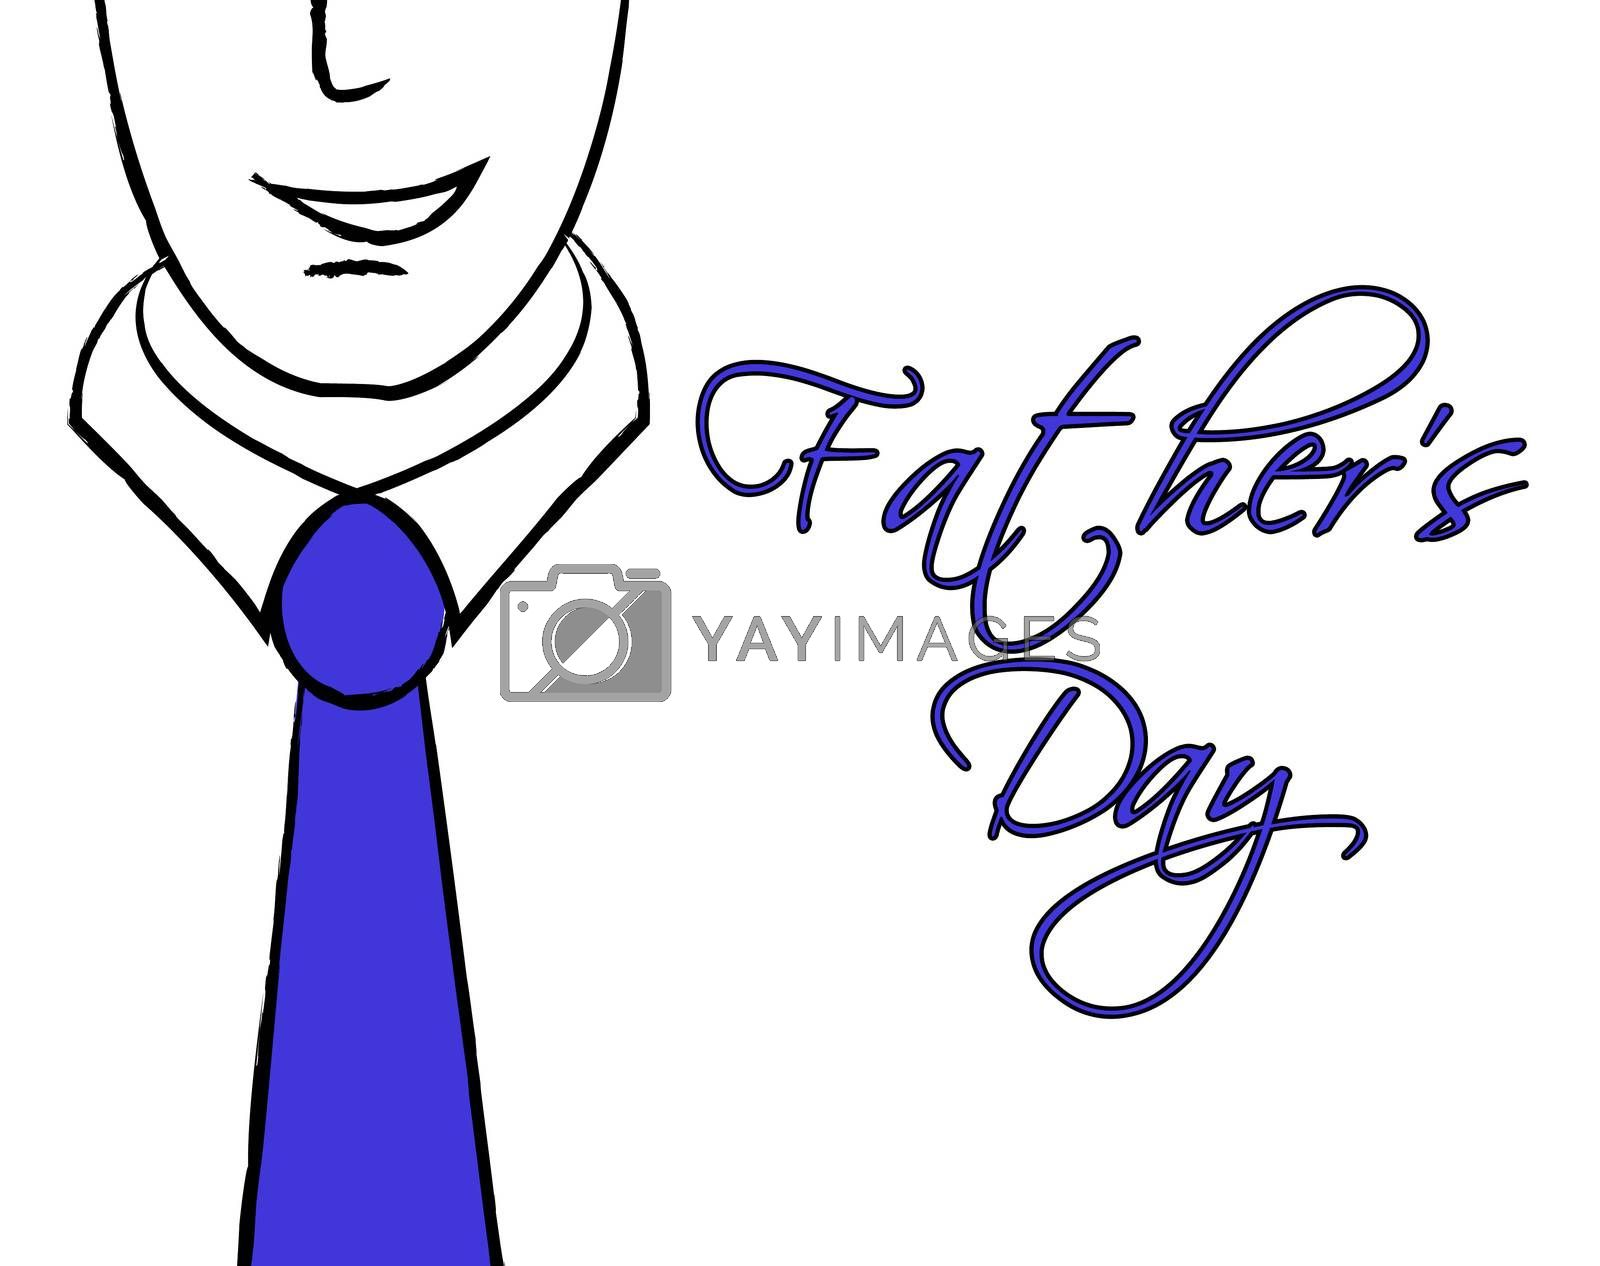 Fathers Day Tie Shows Fun Parenting And Parties by stuartmiles